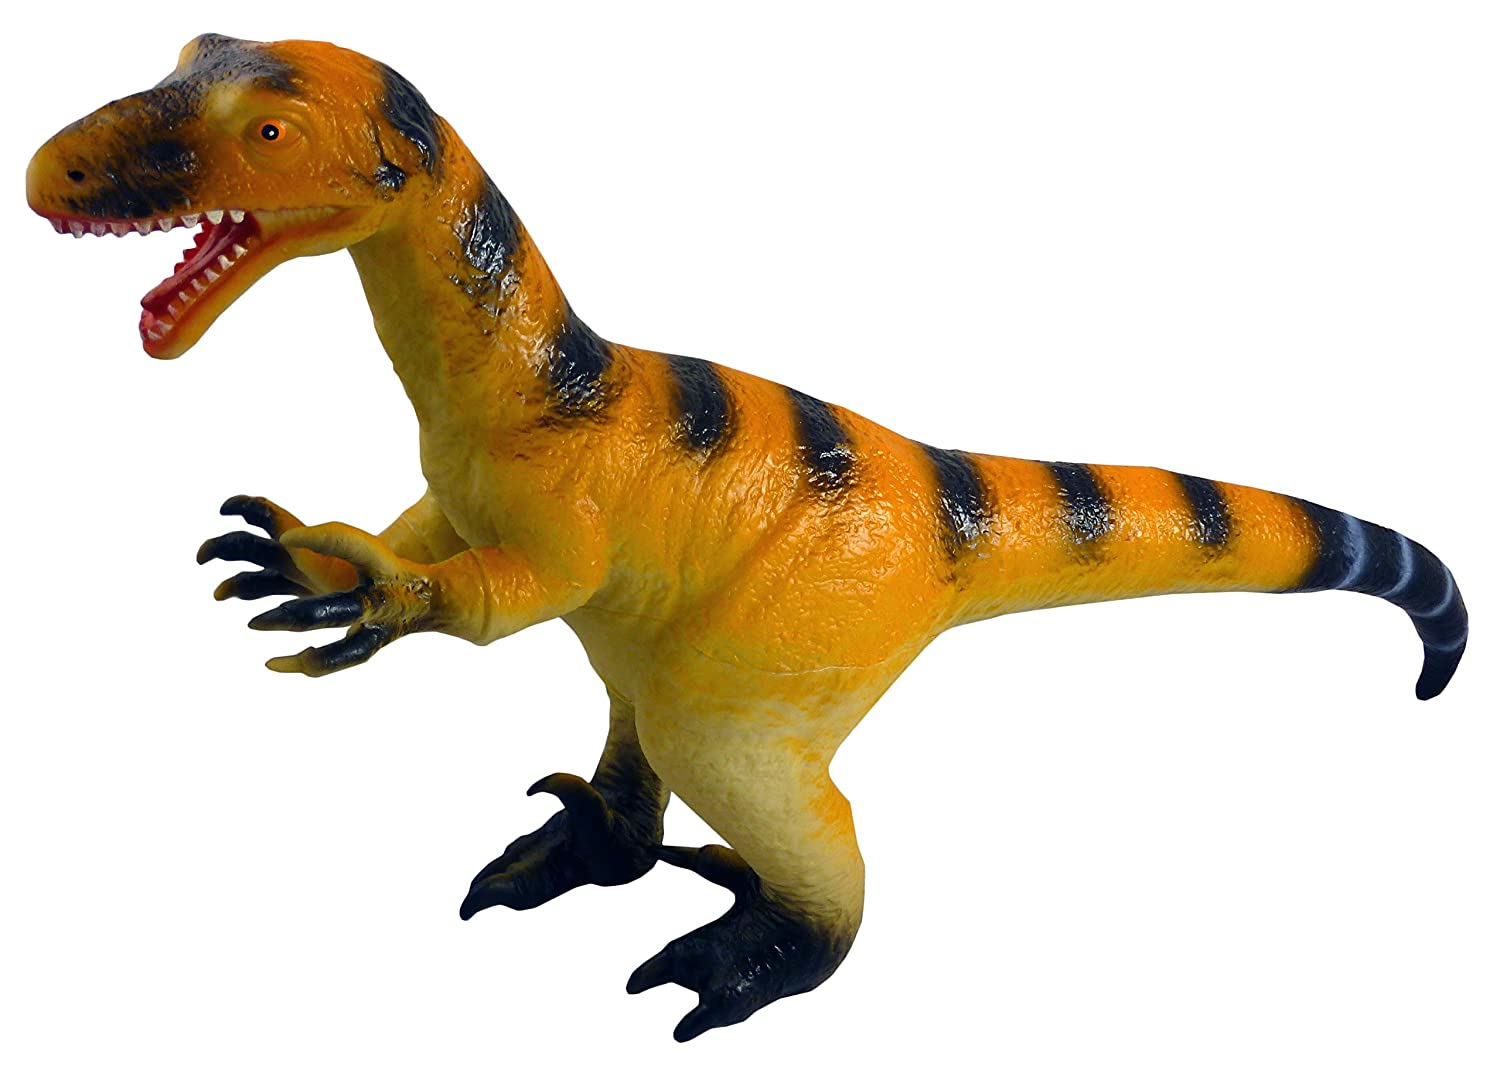 GIANT 36cm SOFT RUBBER STEGOSAURUS DINOSAUR ACTION FIGURE TOY WITH SOUND